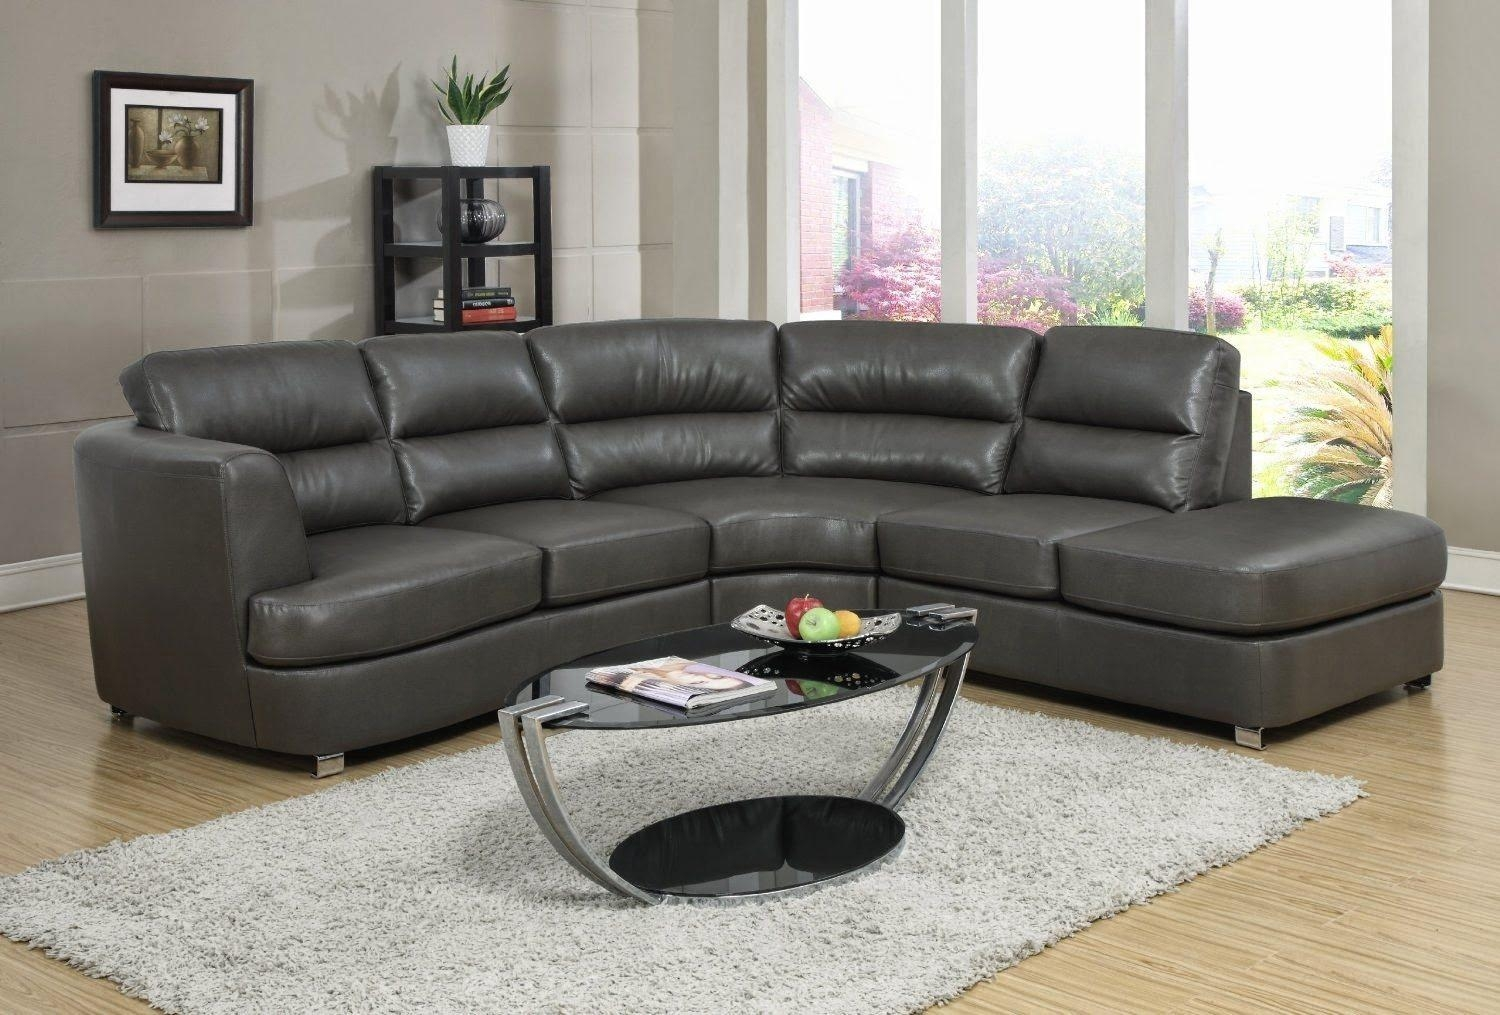 Sofas Center : Charcoal Leather Sofa Grey Sectional Sofacharcoal Inside Charcoal Grey Sofas (View 8 of 20)